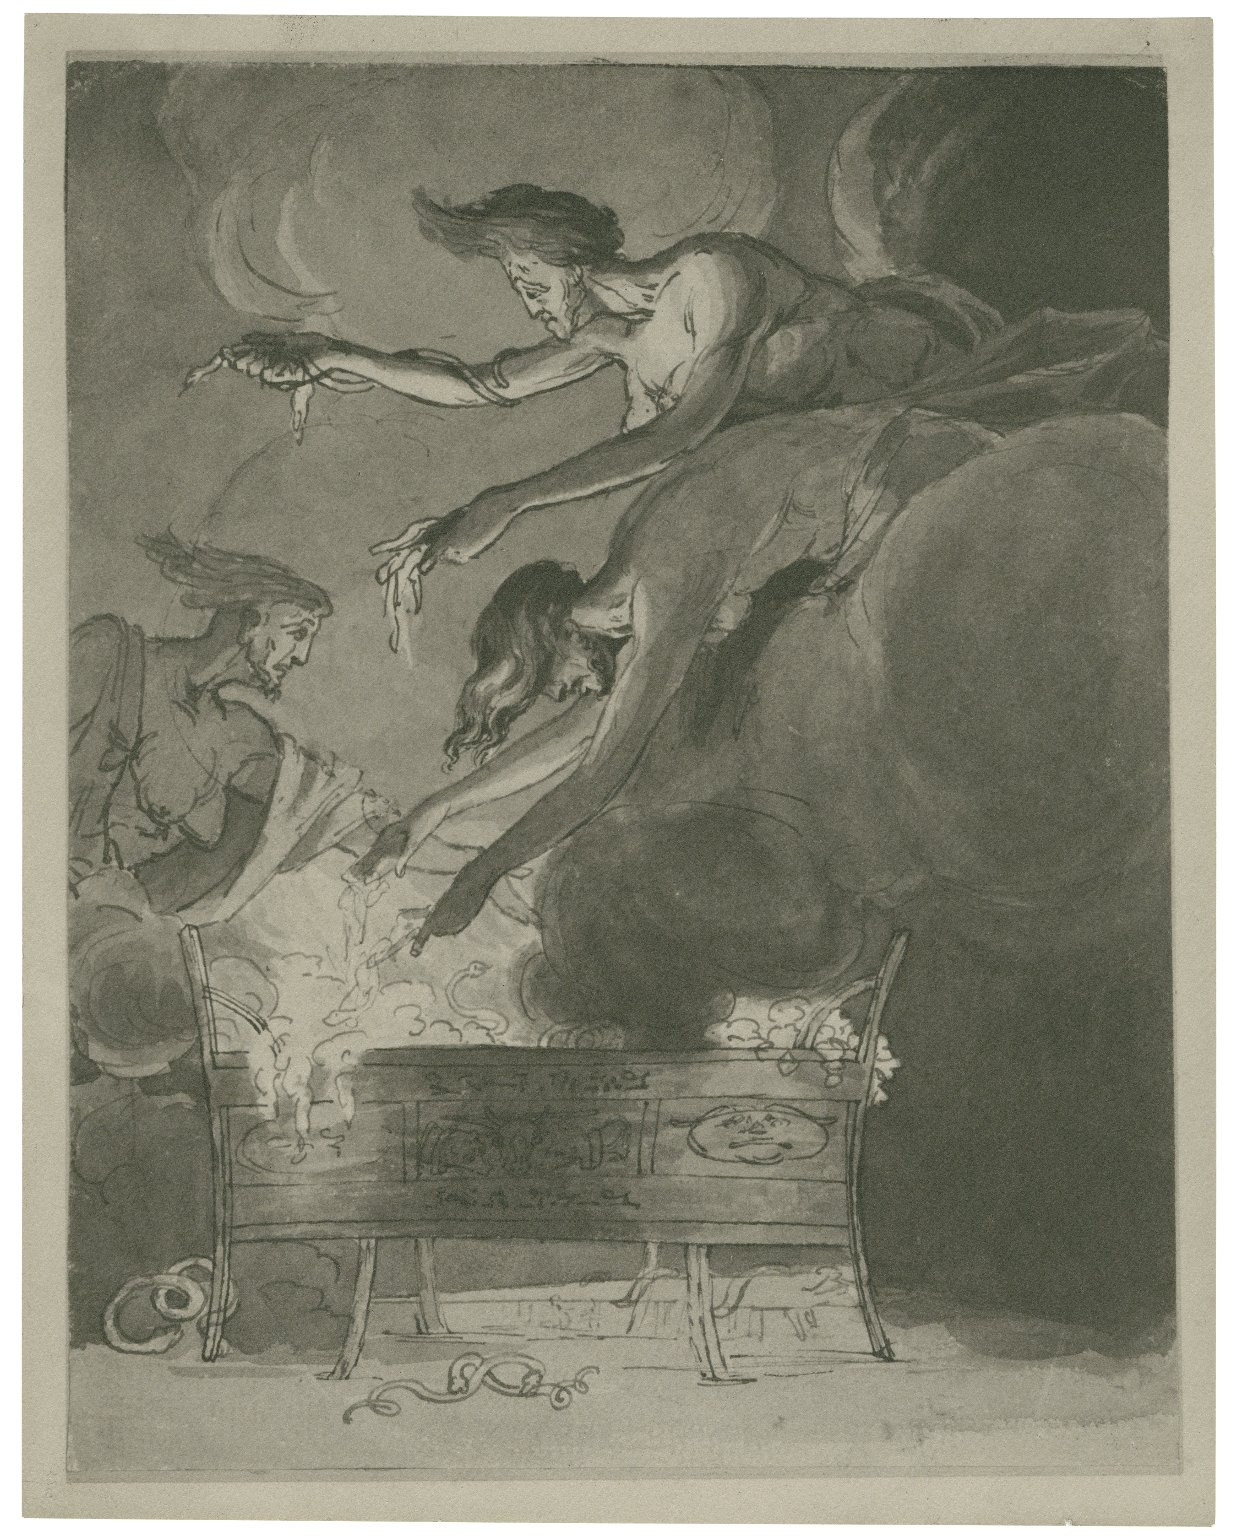 Macbeth. The three witches hovering over the couldron in the cave, IV.i.